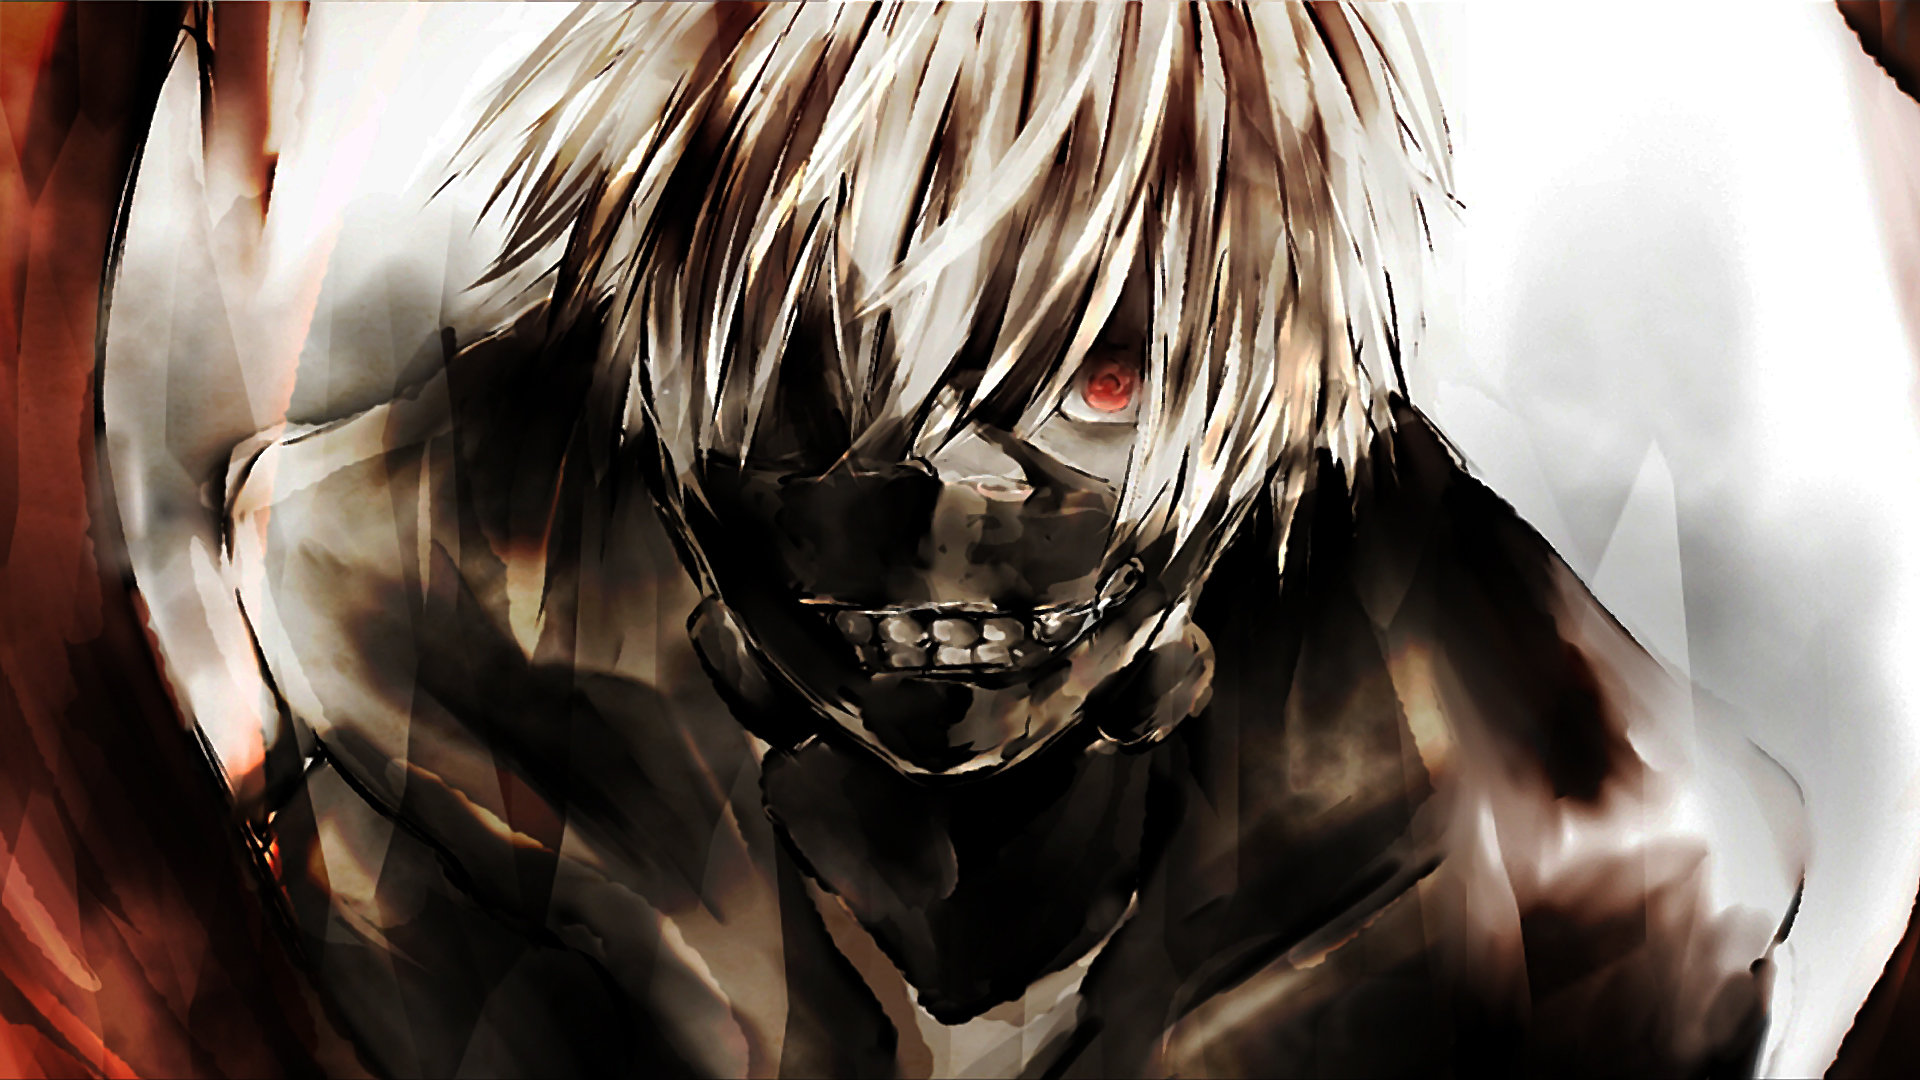 High resolution Ken Kaneki hd 1920x1080 background ID:150207 for desktop